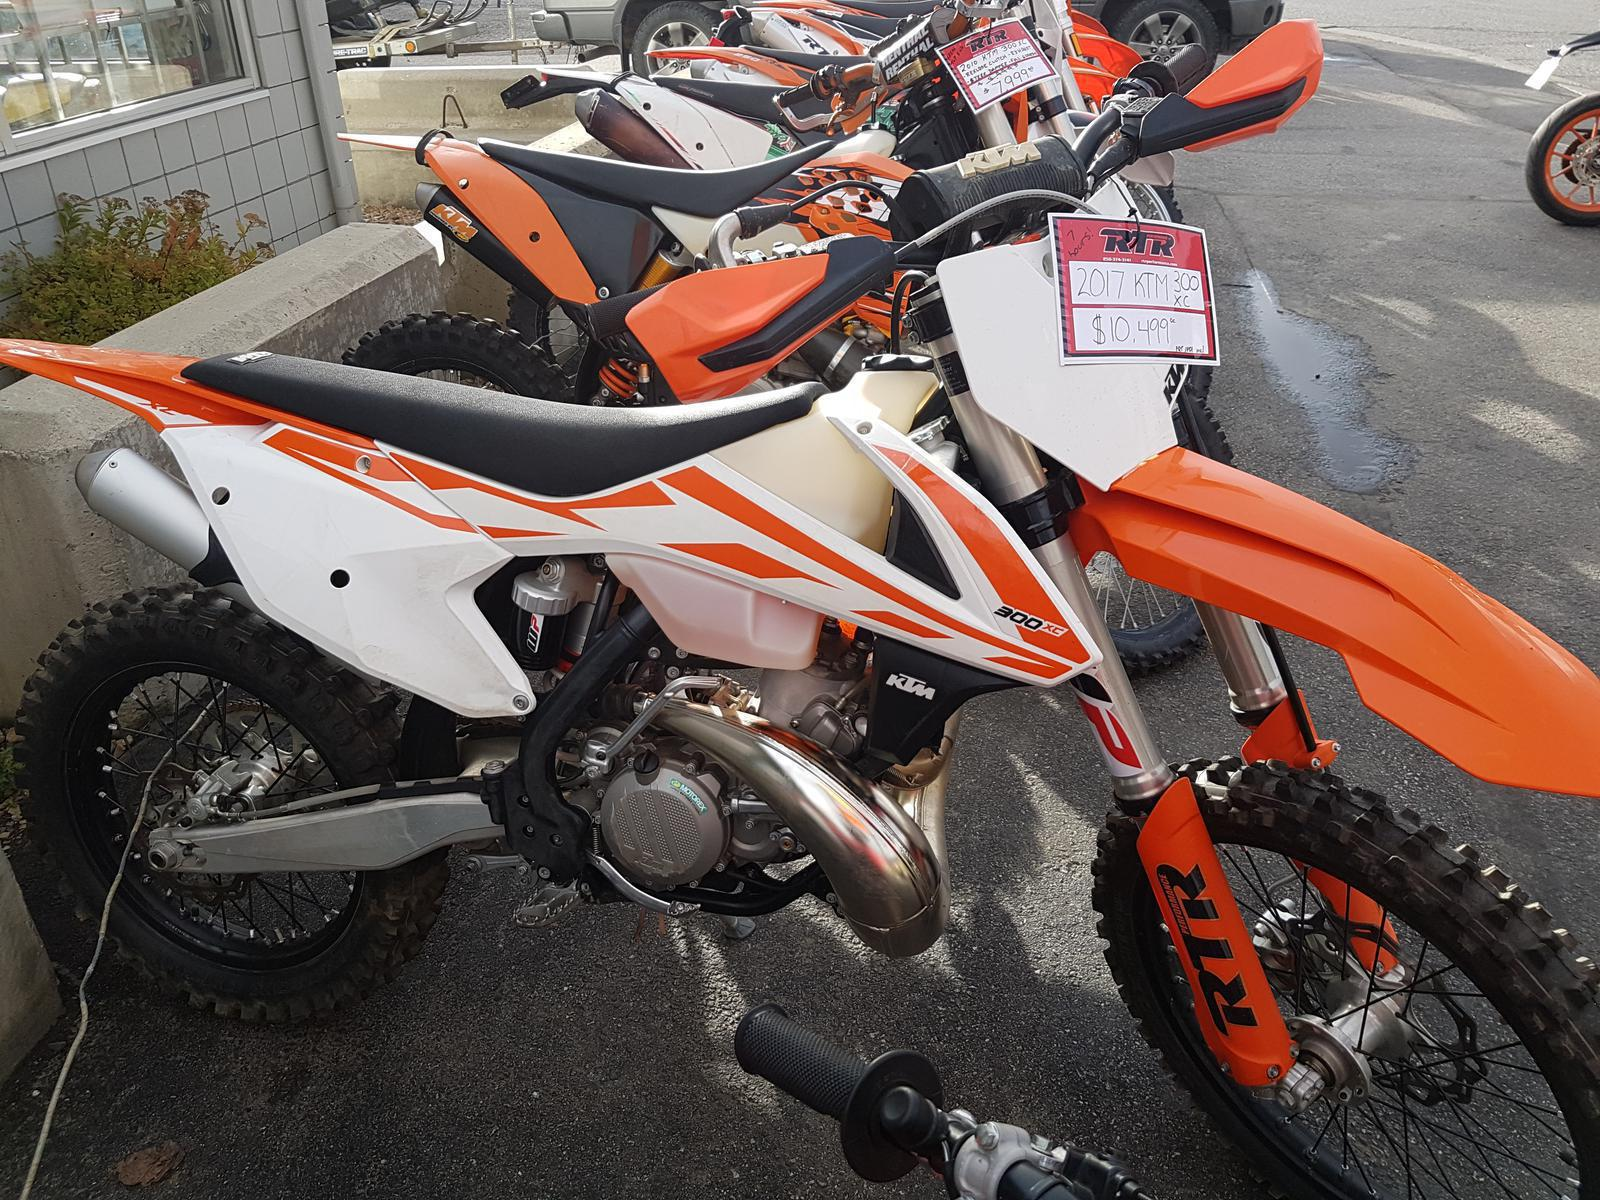 2017 ktm 300 xc for sale in kamloops, bc | rtr performance 1-800